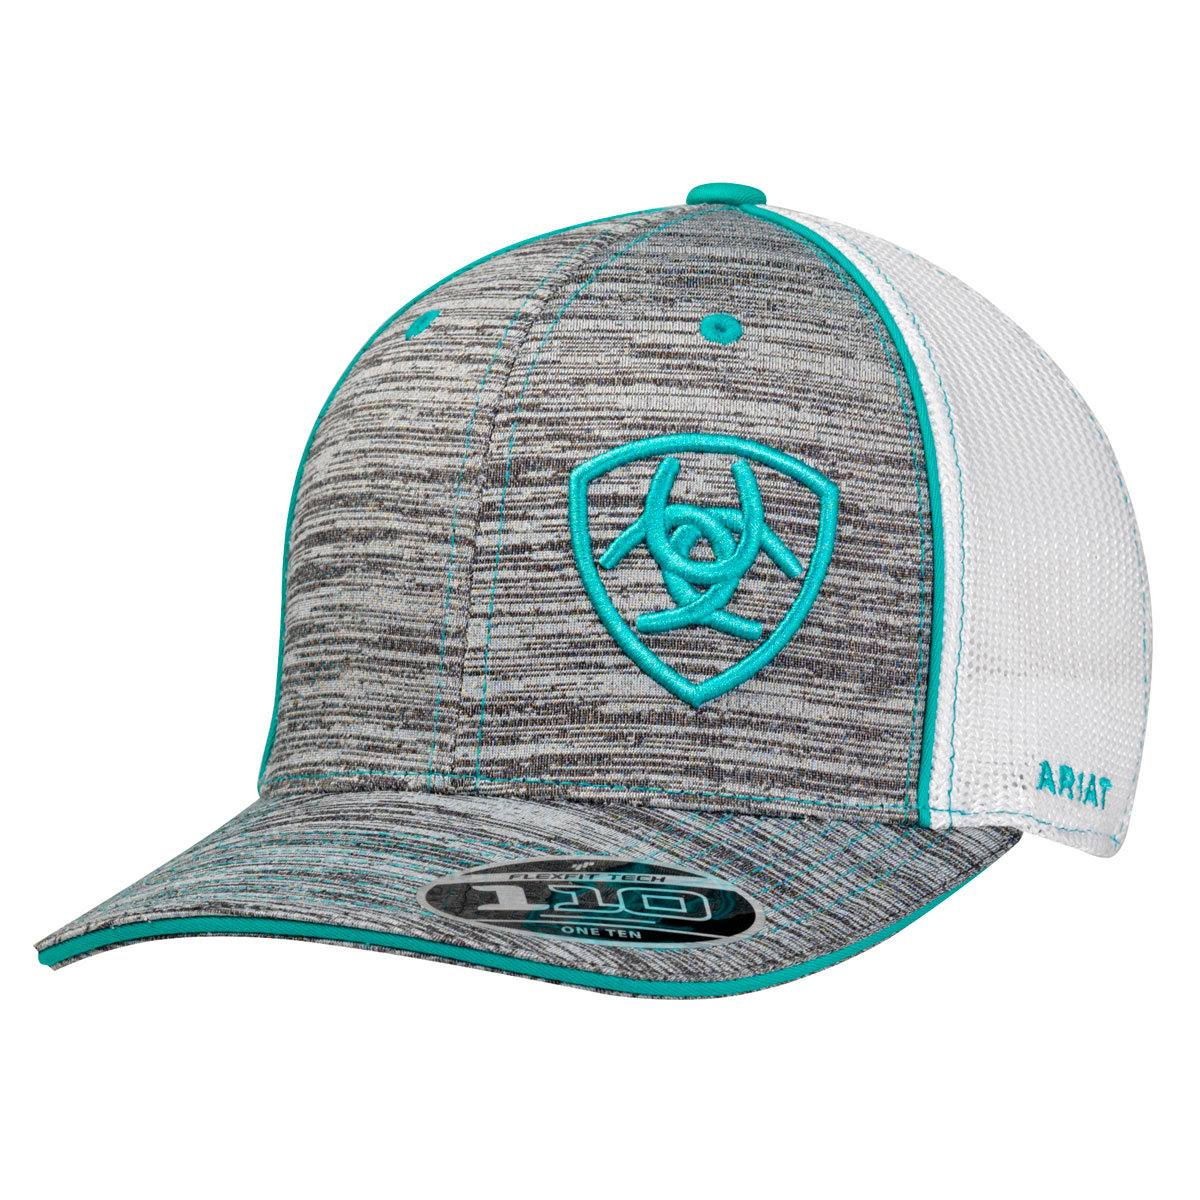 Ariat Men's 6-panel Shield Logo Cap - Grey/Turquoise